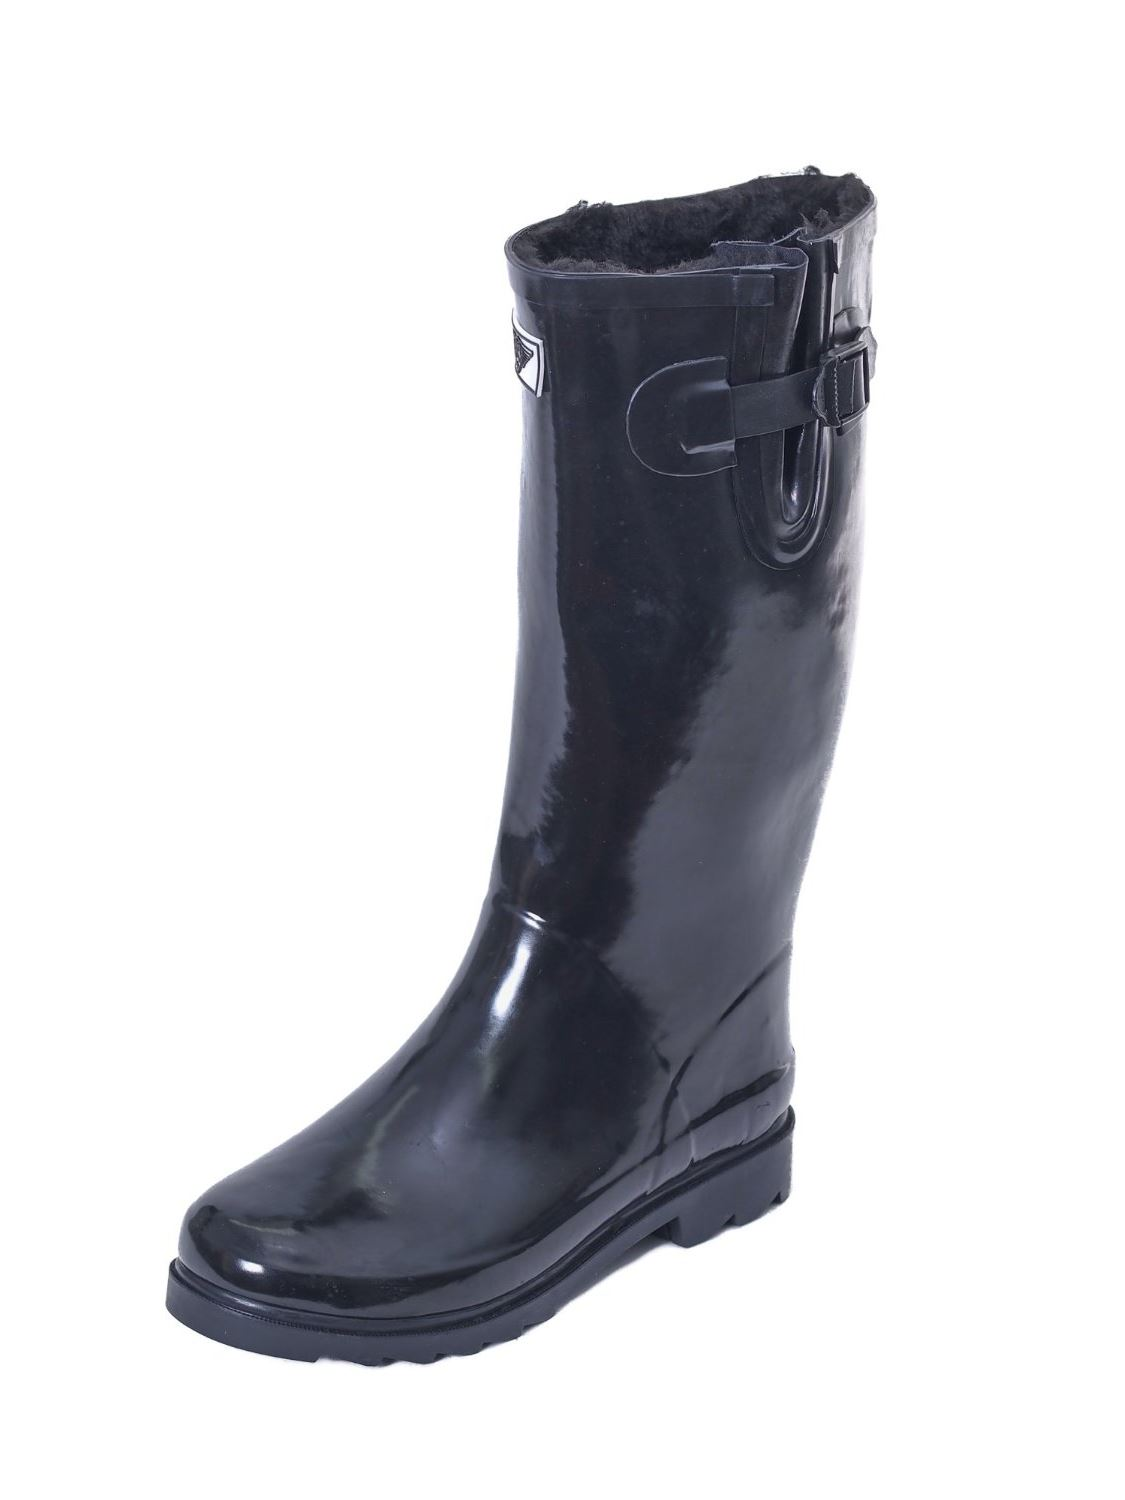 Lined Rain Boots bODeWq8Y